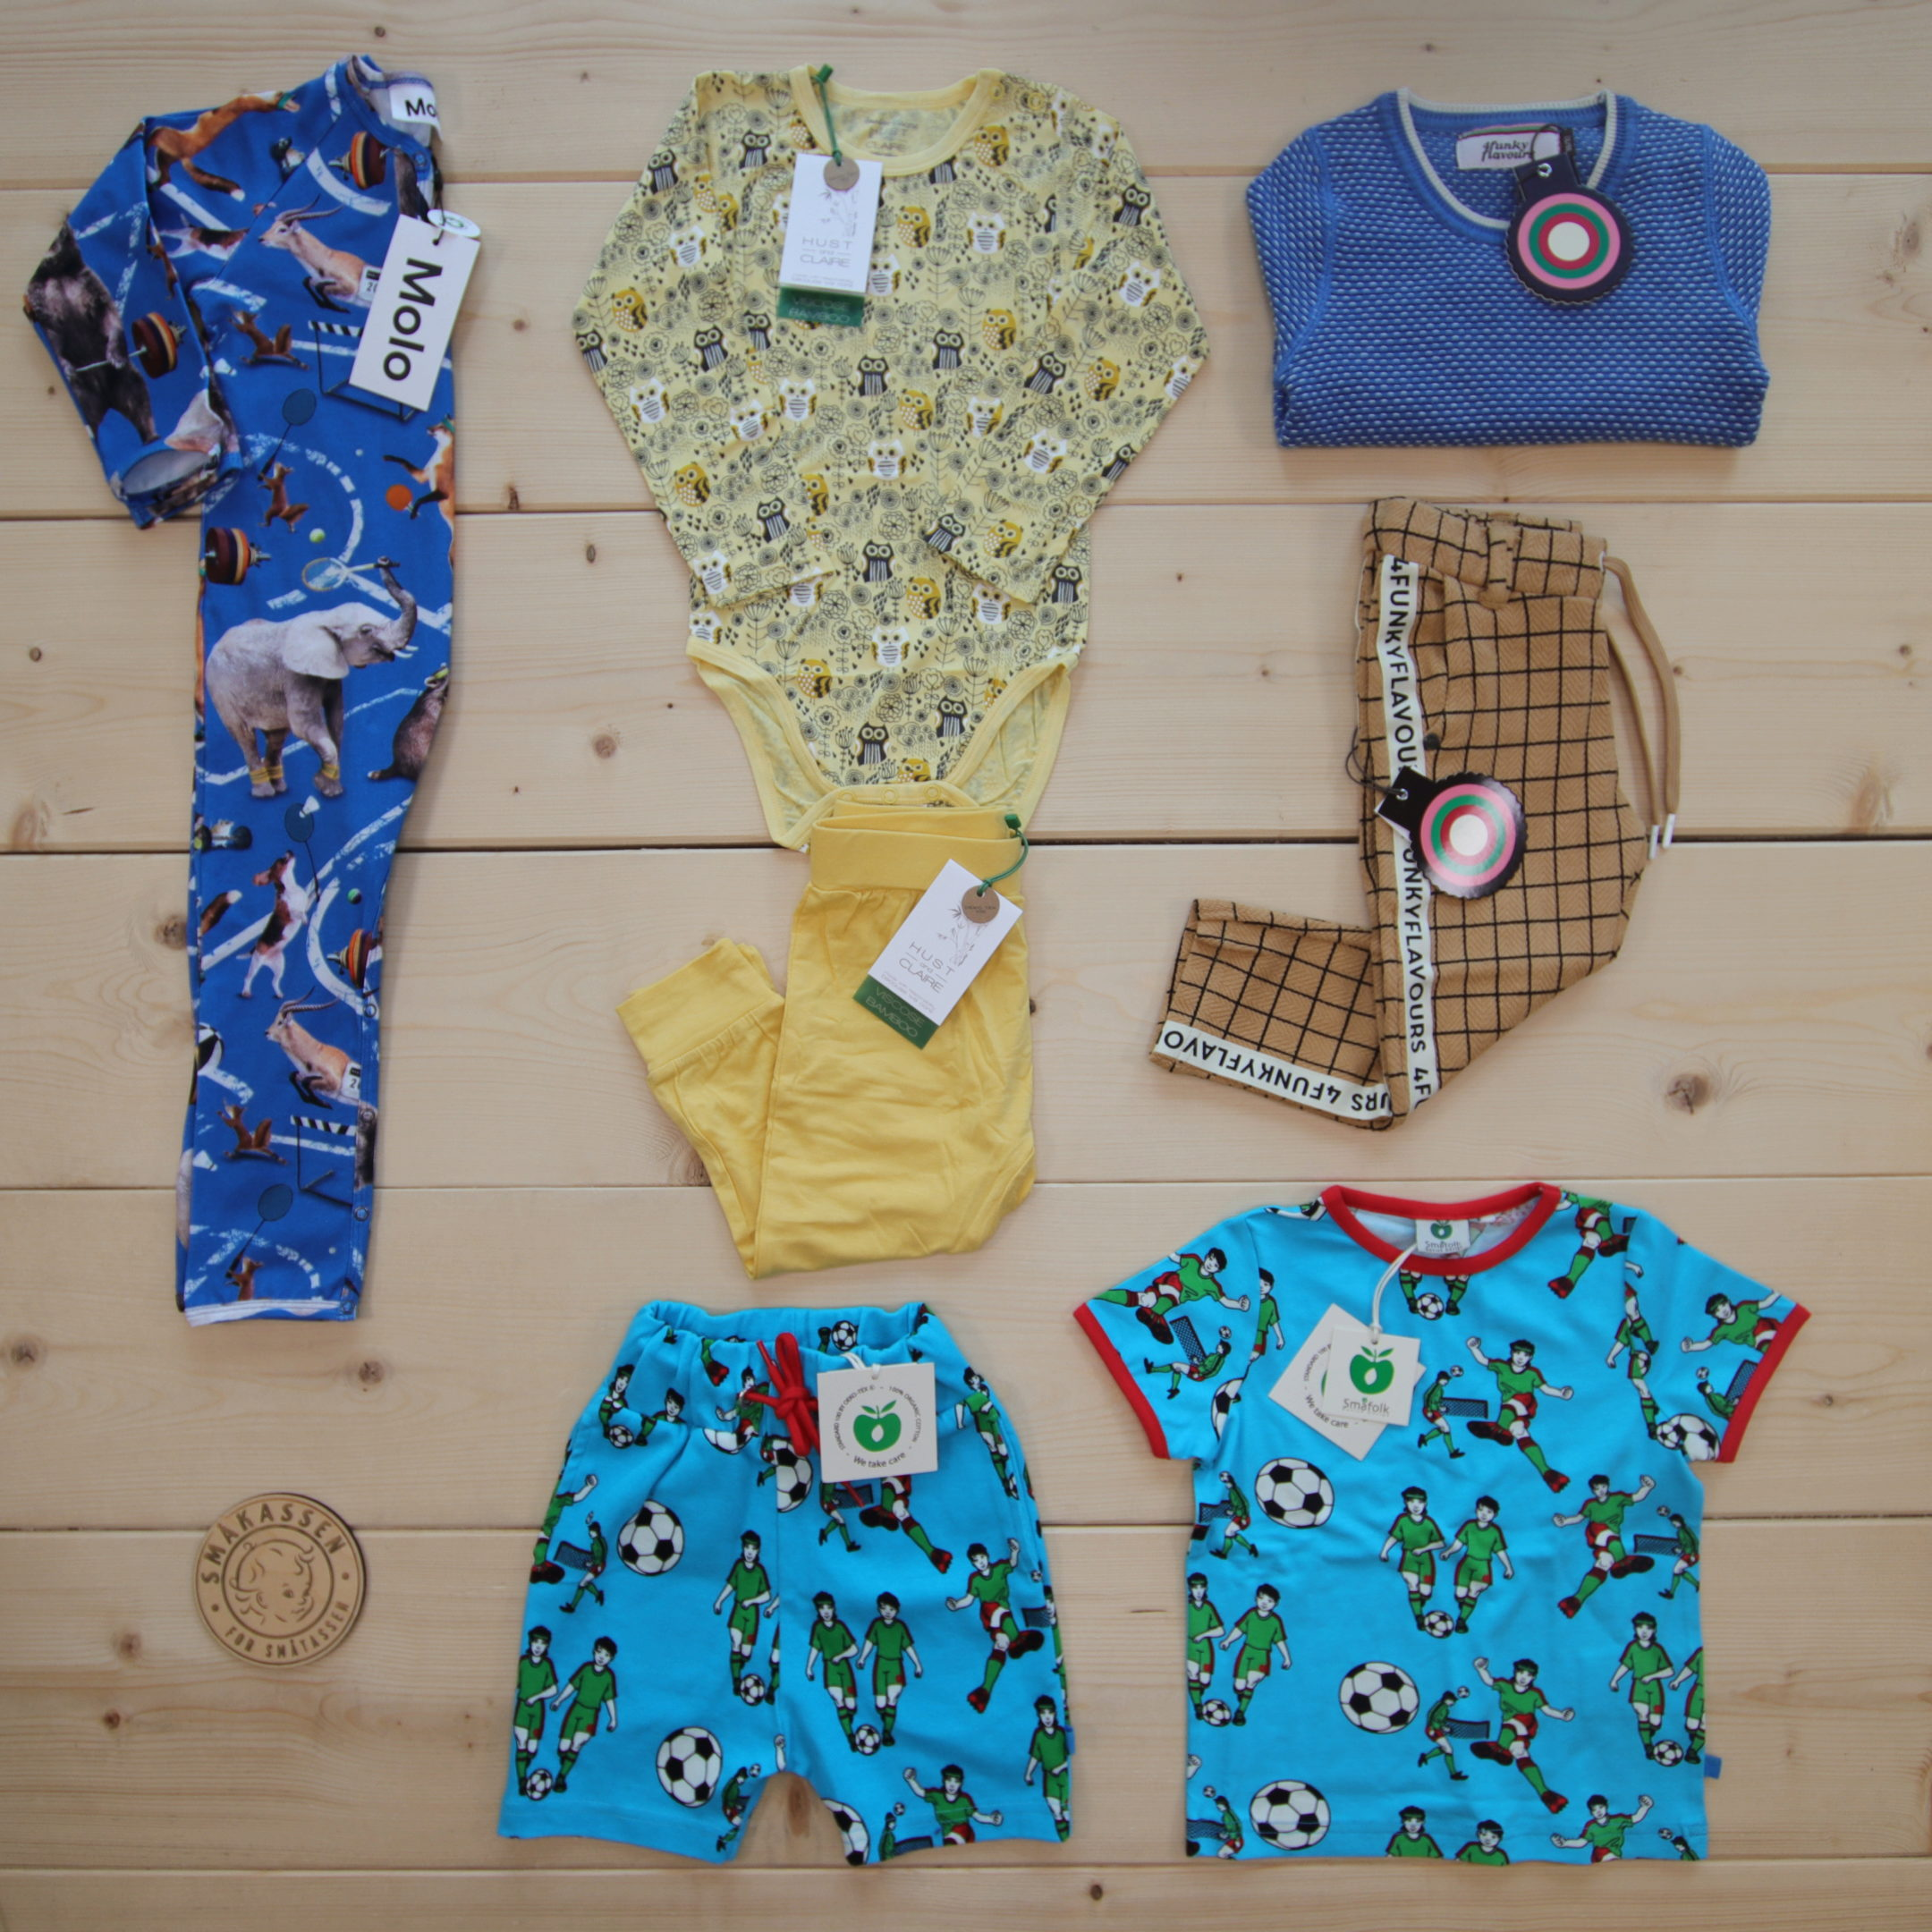 This is a 2500 NOK* Småkassen that we prepared for a boy  in the styles cool and colorful in size 86